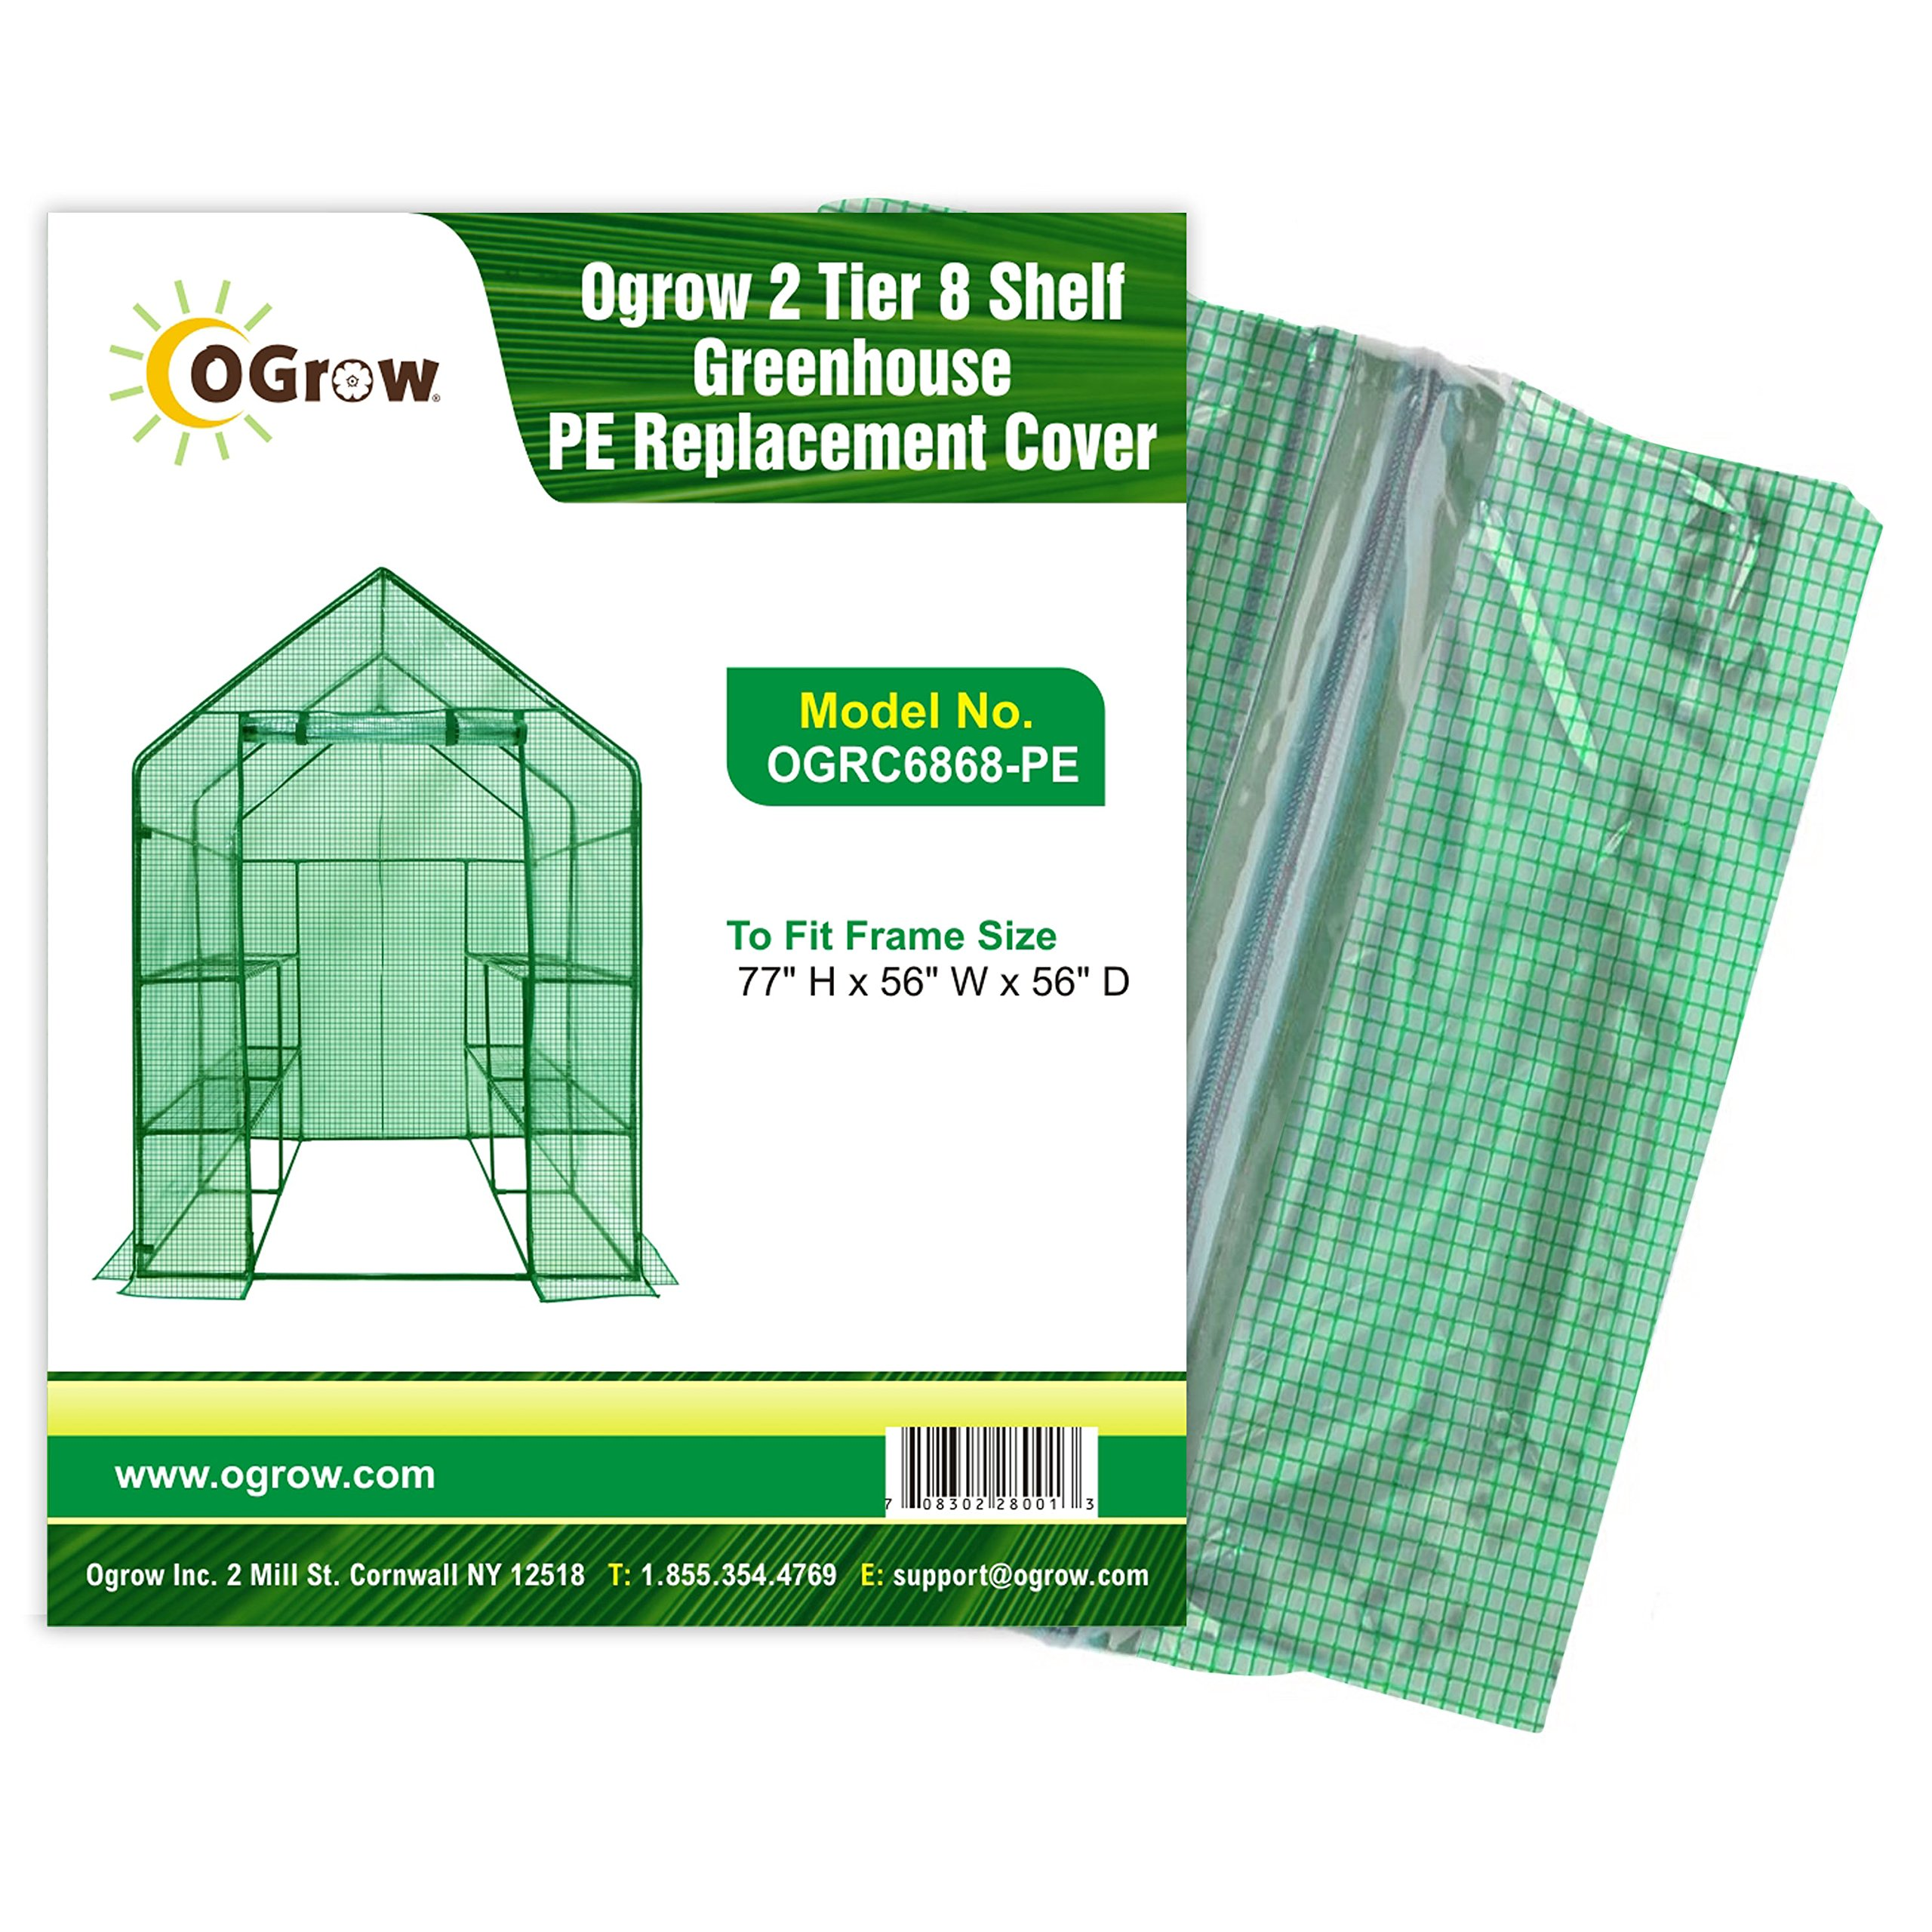 OGrow 2 Tier 8 Shelf Greenhouse Pe Replacement Cover - to Fit Frame Size 77'' H X 56'' W X 56'' D, green